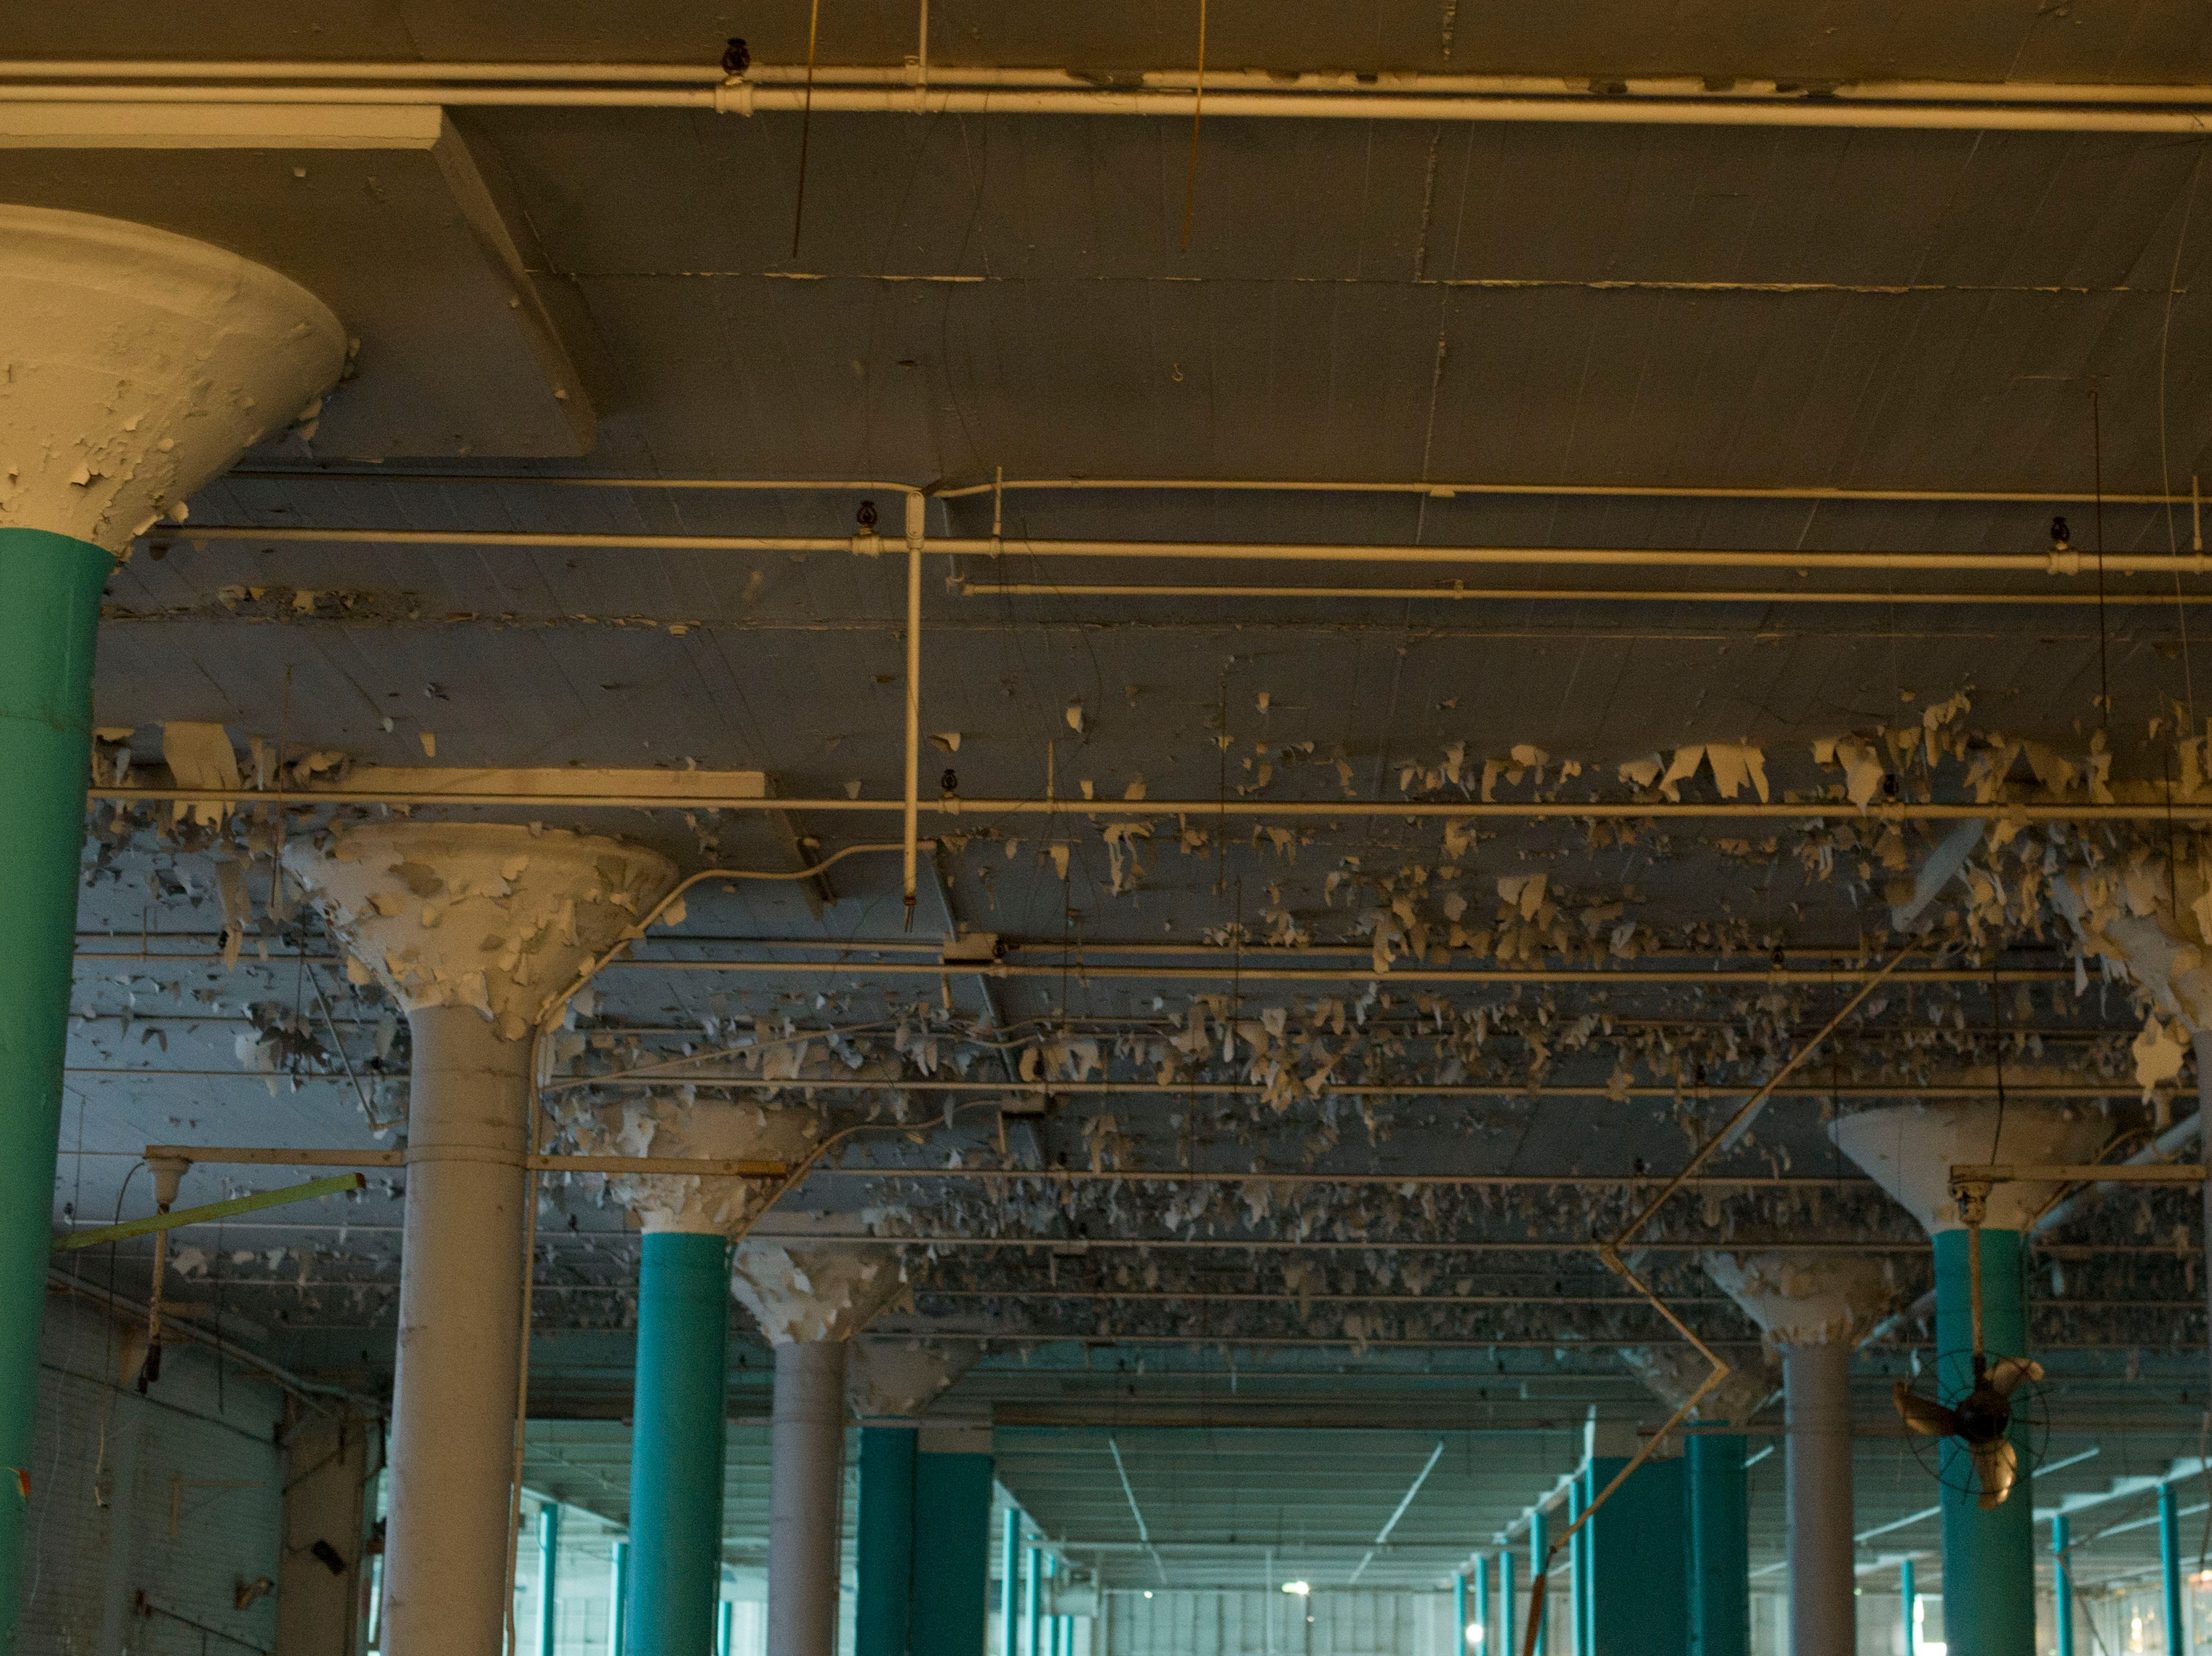 Material peels away from the ceiling at the Standard Knitting Mill building on Thursday, November 15, 2012.